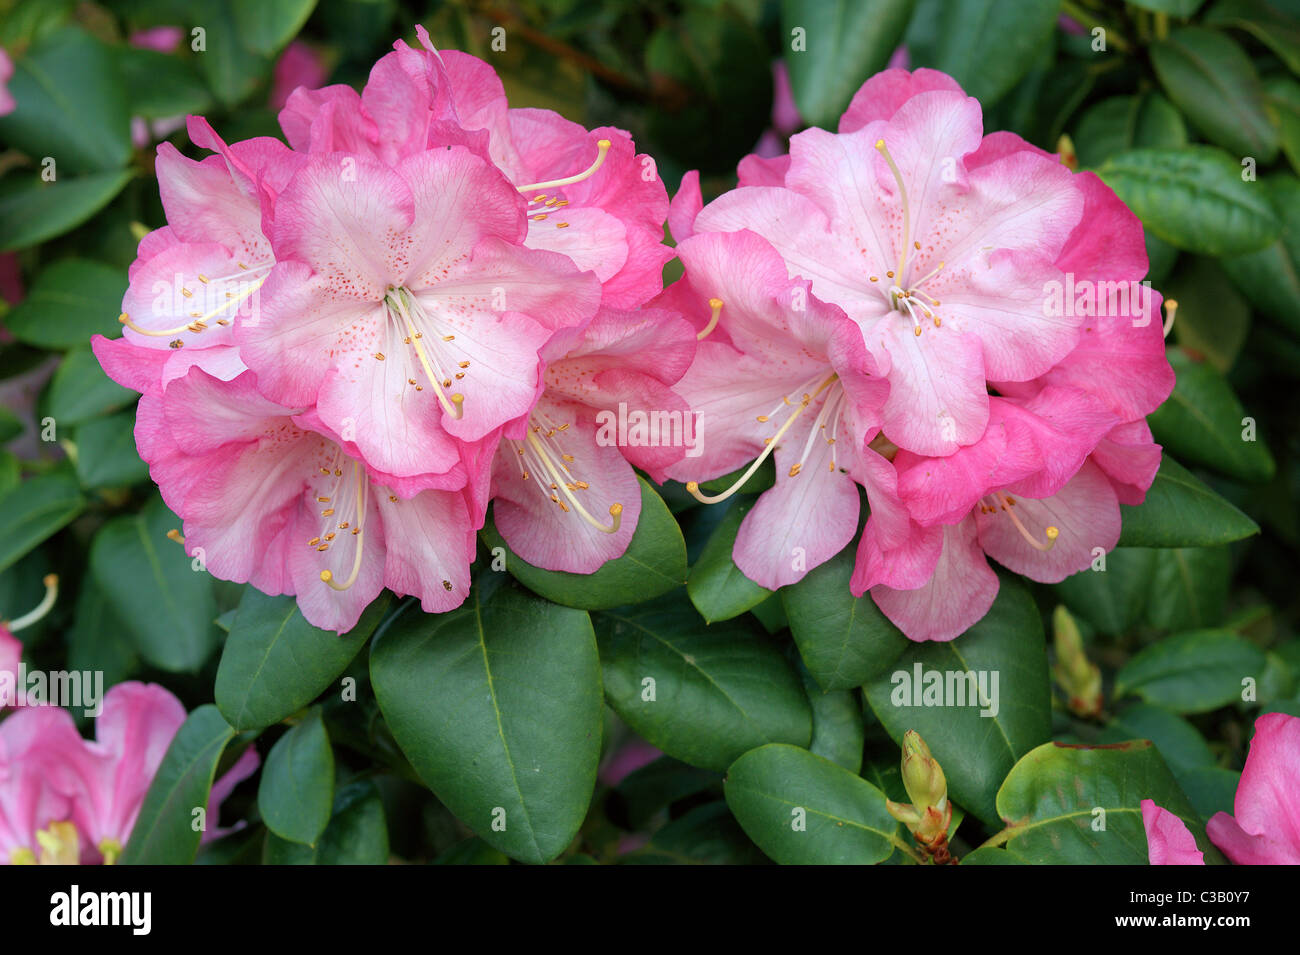 Pink rhododendron Stadt Essen blossom - Stock Image